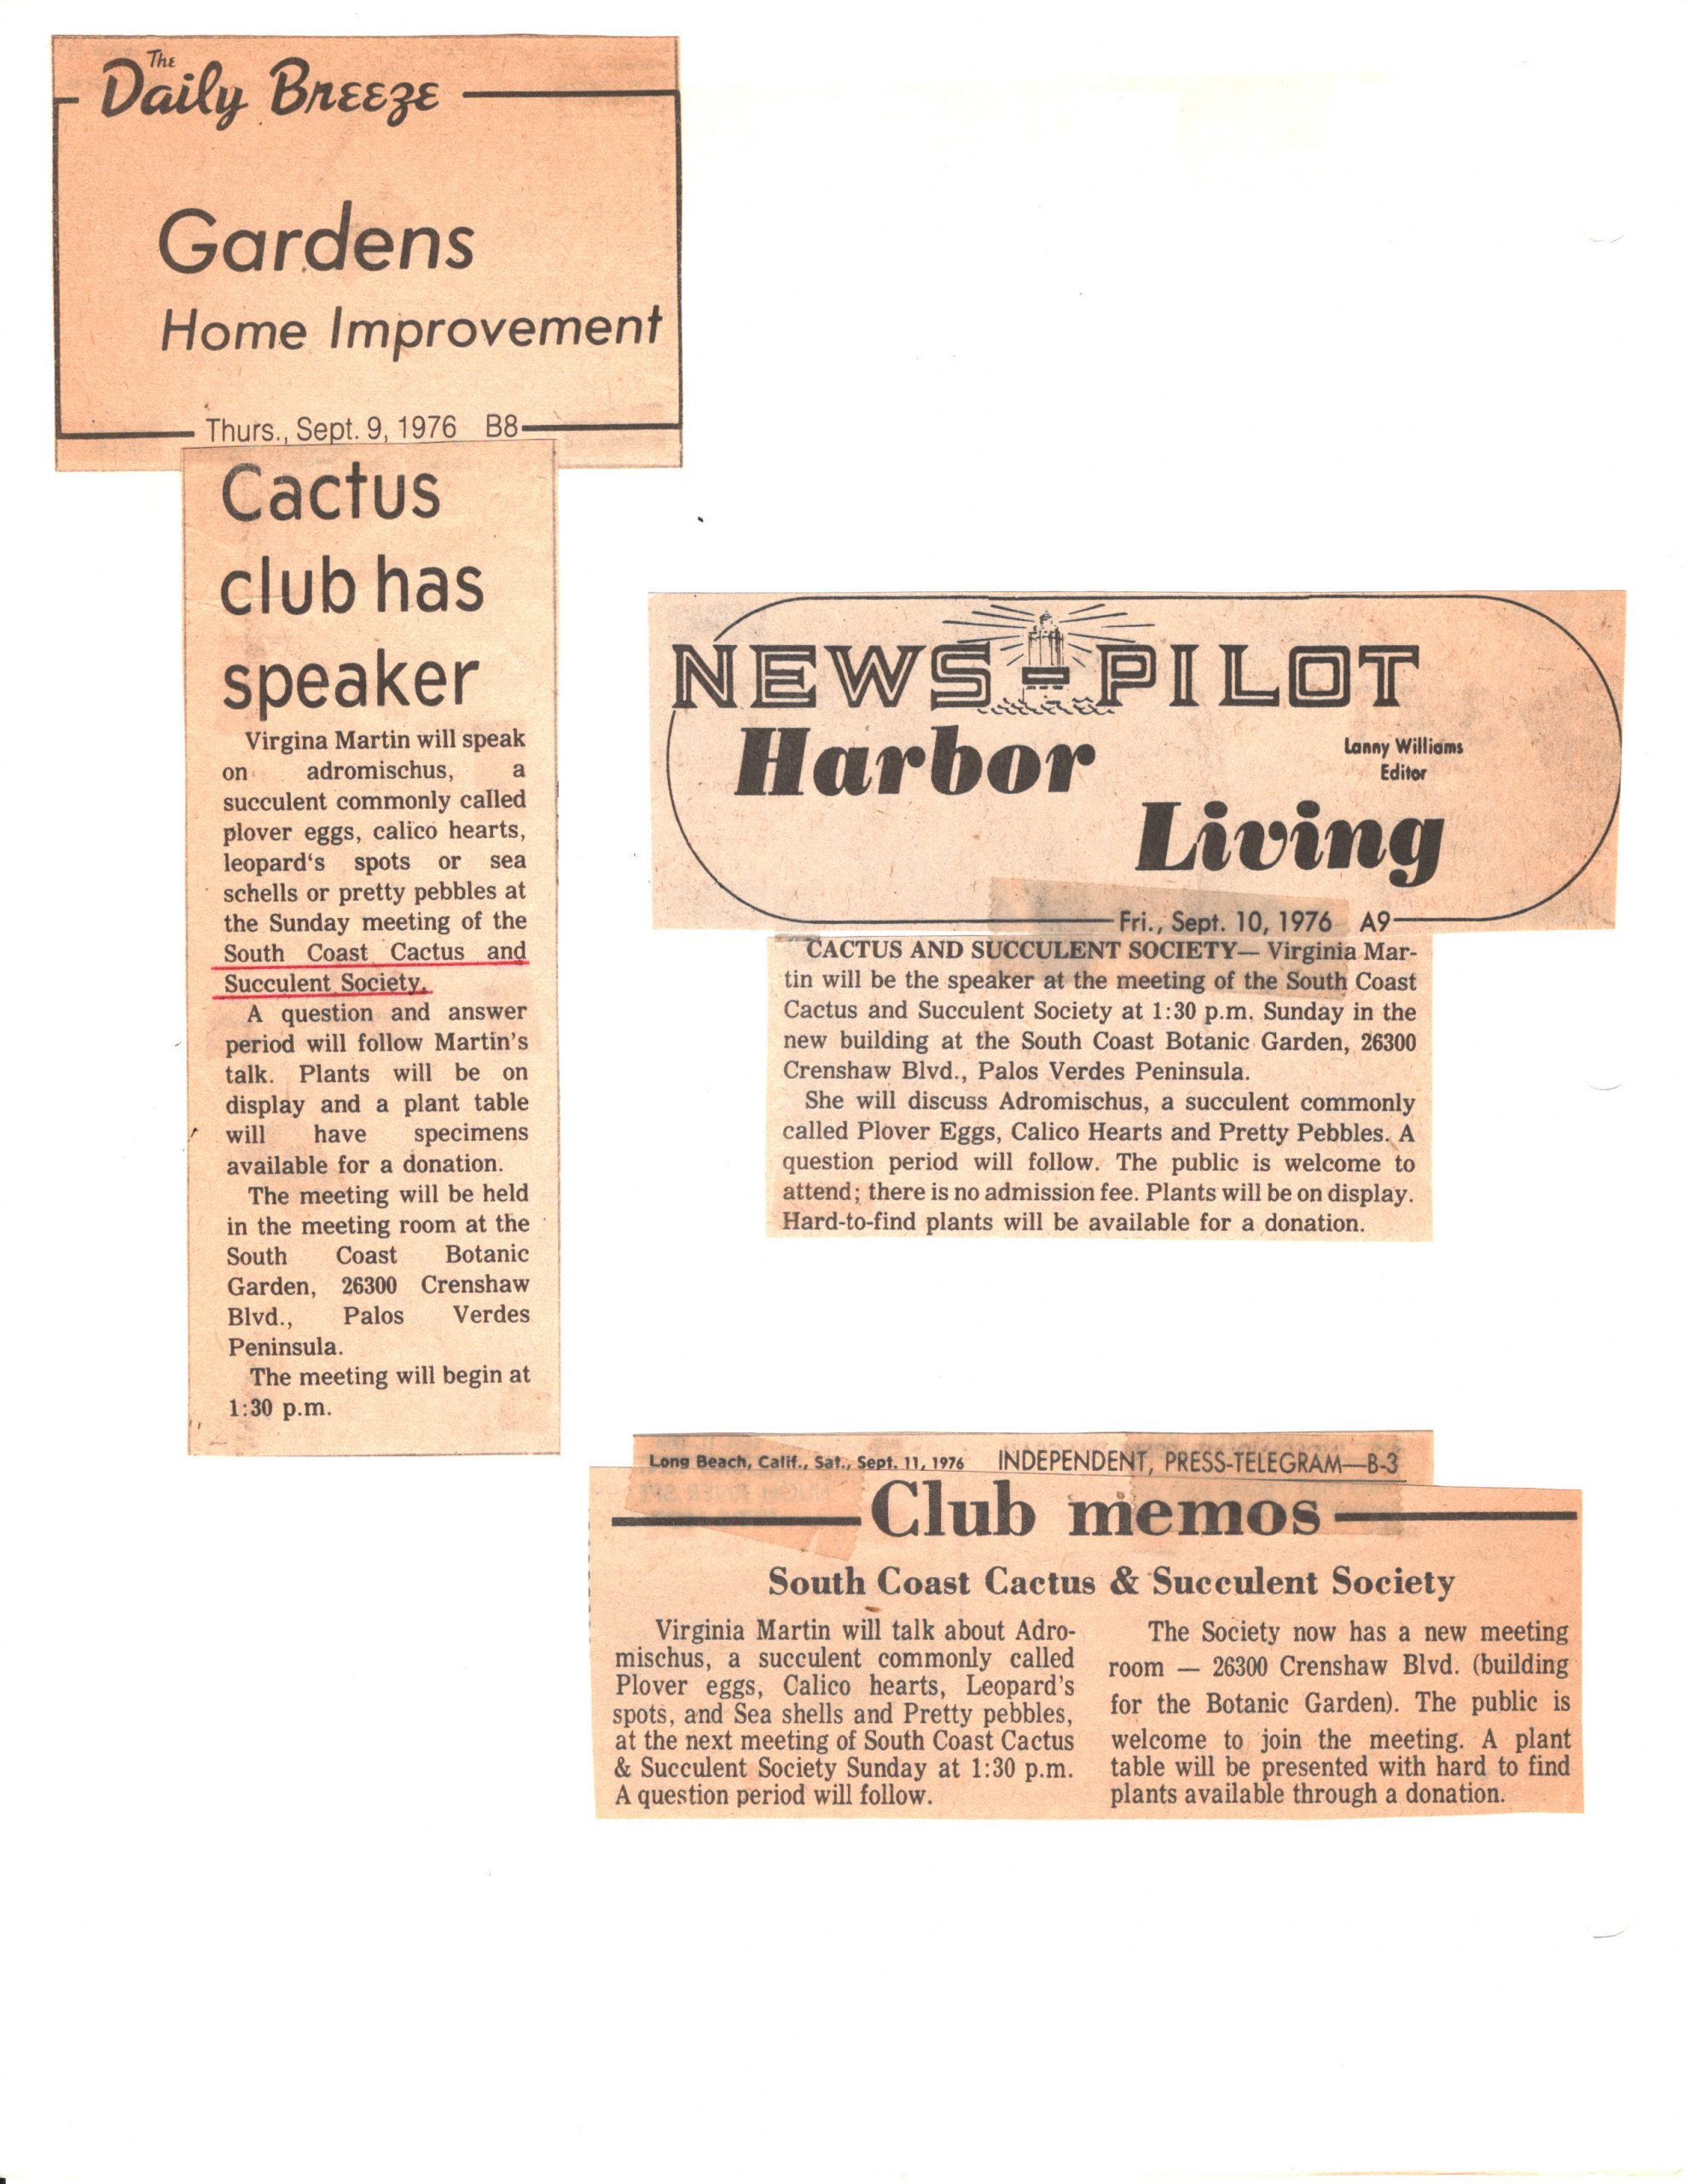 SCCSS-Cuttings-1976-09-09